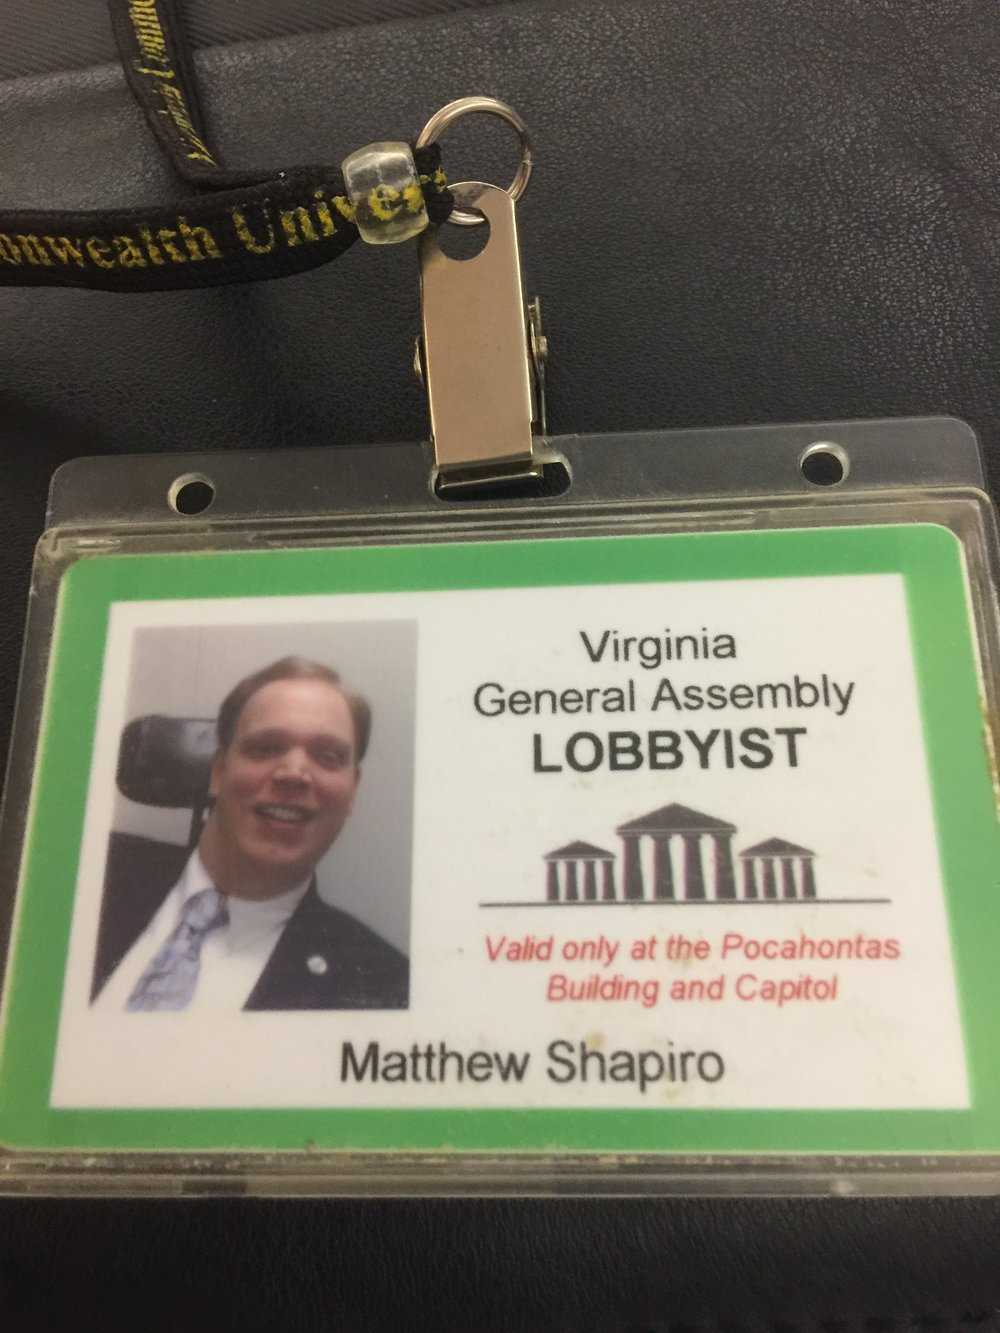 PHOTO: Matthew's Lobbying badge during his first year lobbying for The Virginia Association of People Supporting Employment Lobbying (VAAPSE)